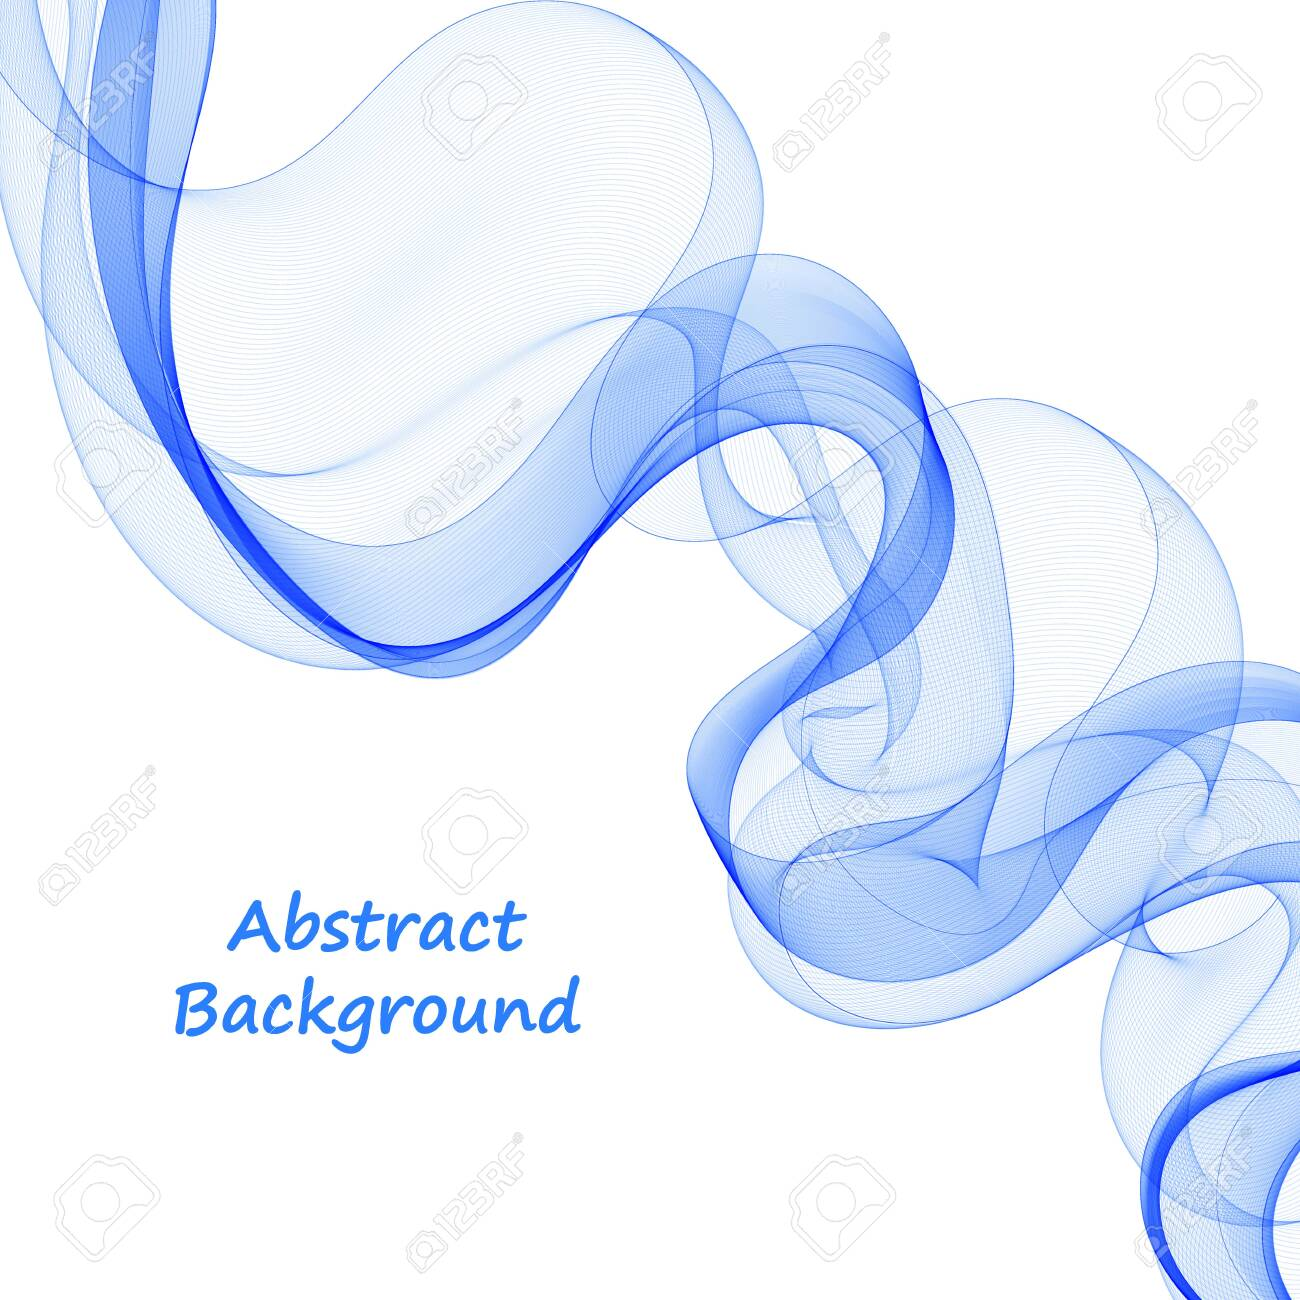 blue abstract wave. presentation template. decor for shell brochures, flyers, postcards. layout for an advertising banner - 142205239